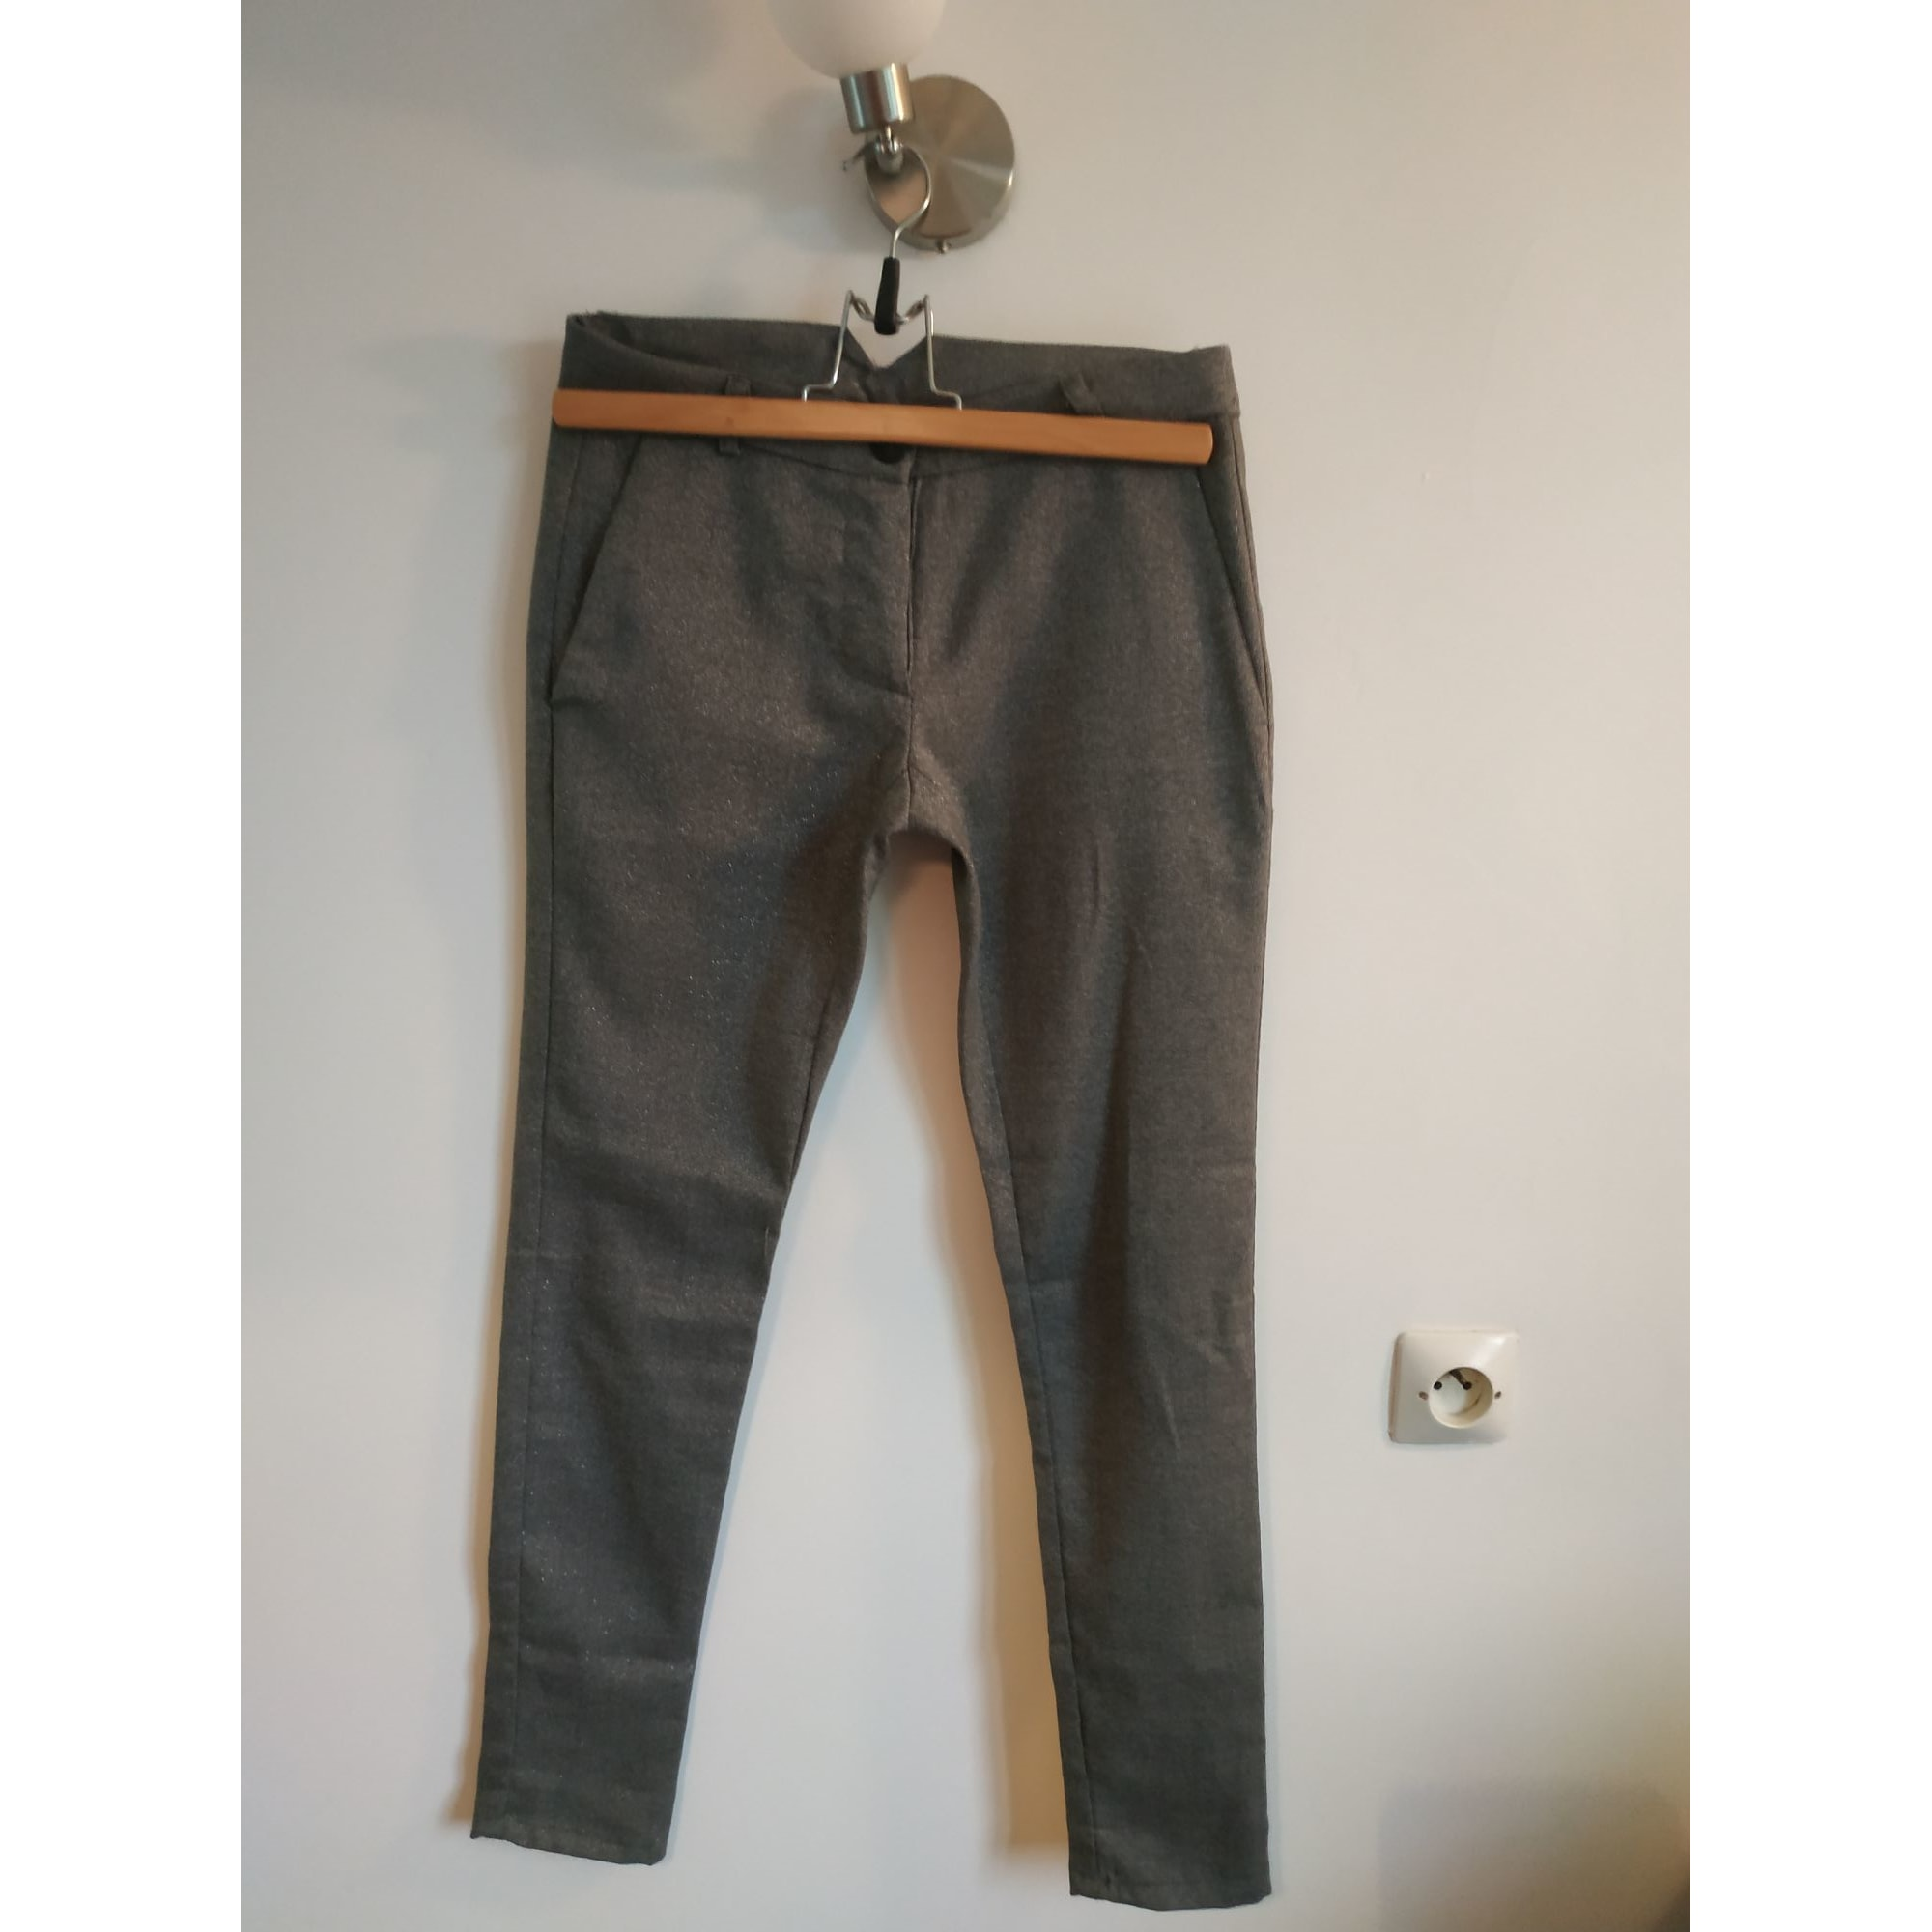 Pantalon droit PLEASE gris pailleté